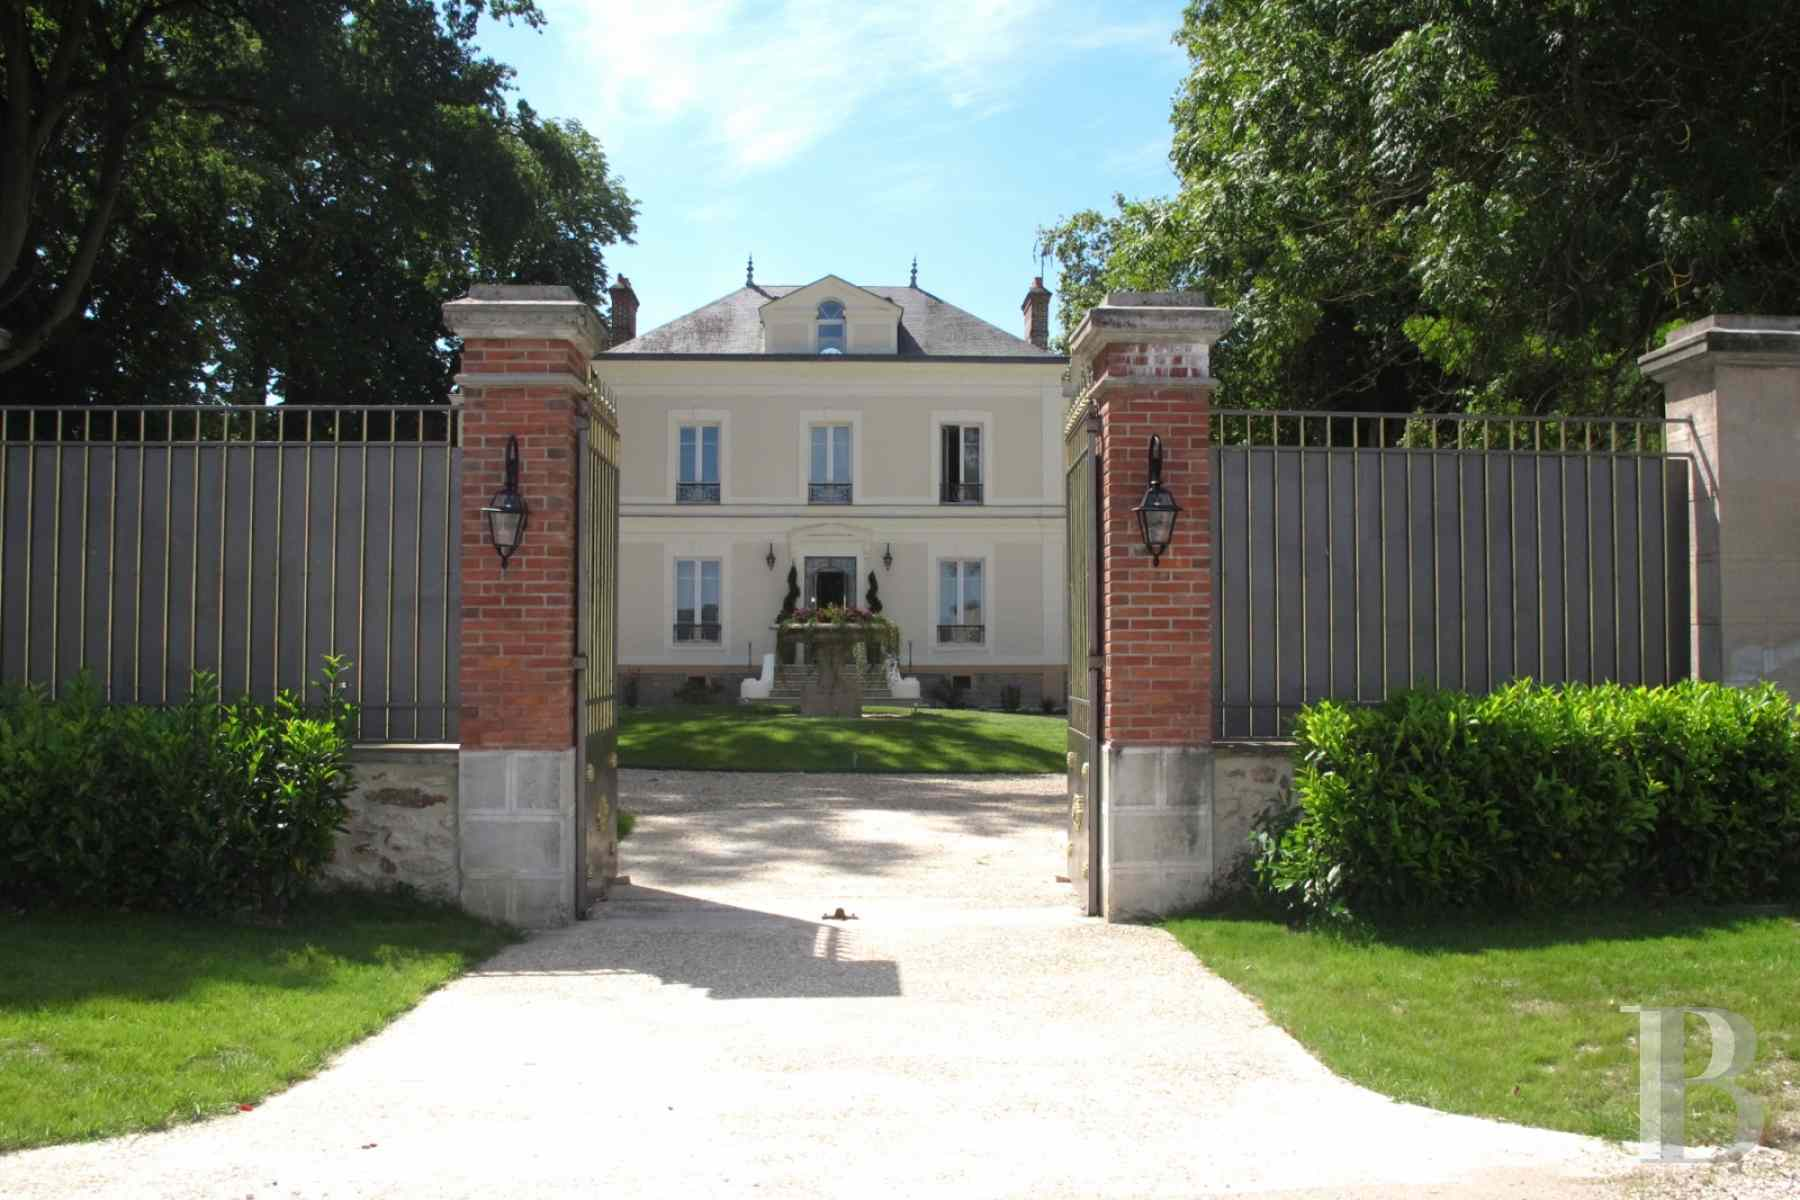 chateaux for sale France ile de france hunting lodge - 13 zoom